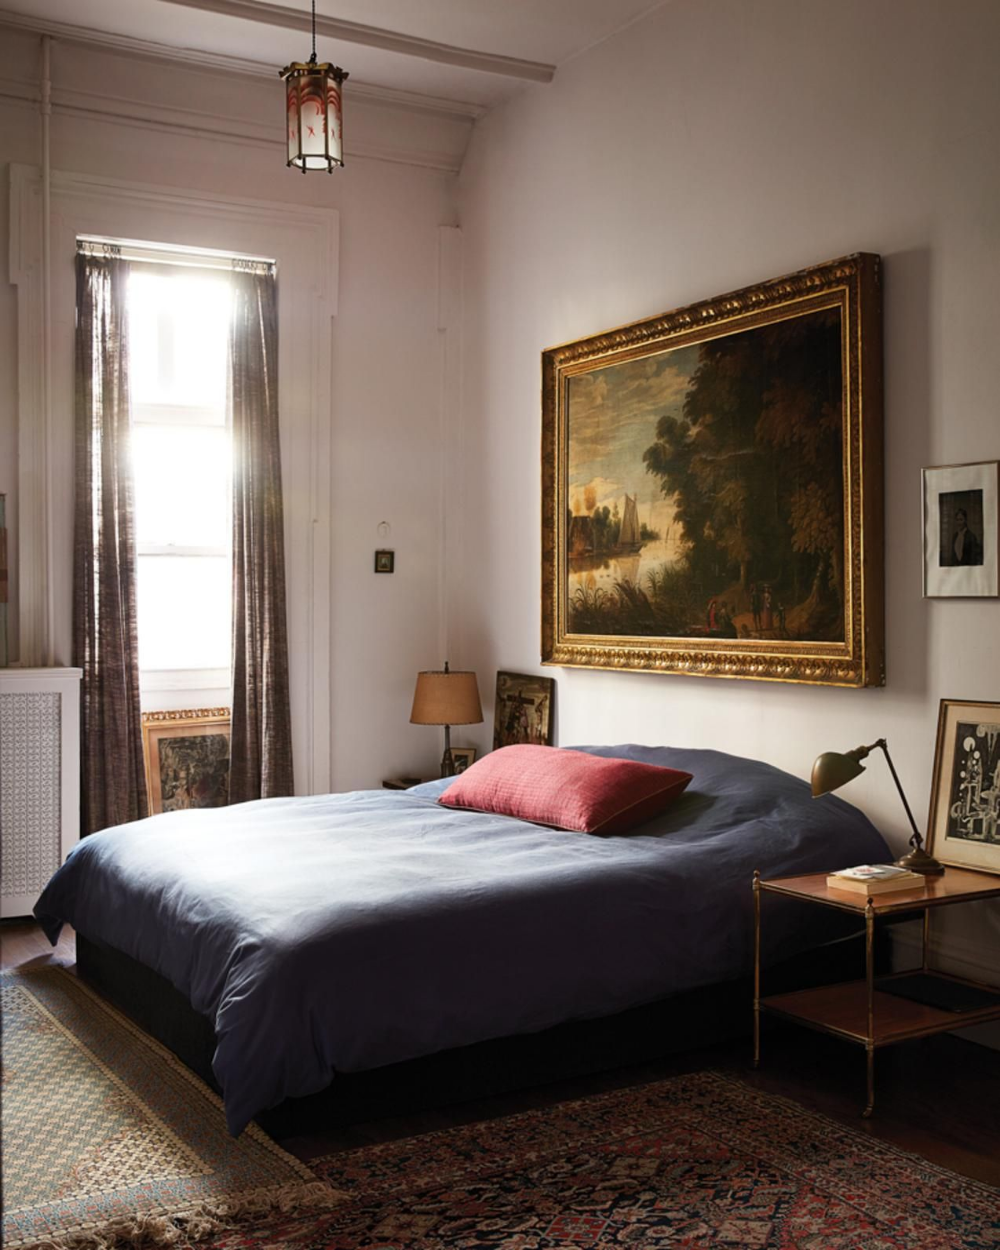 Cook Street Apartments: Inside A Rental Apartment That Looks Like An Old-World